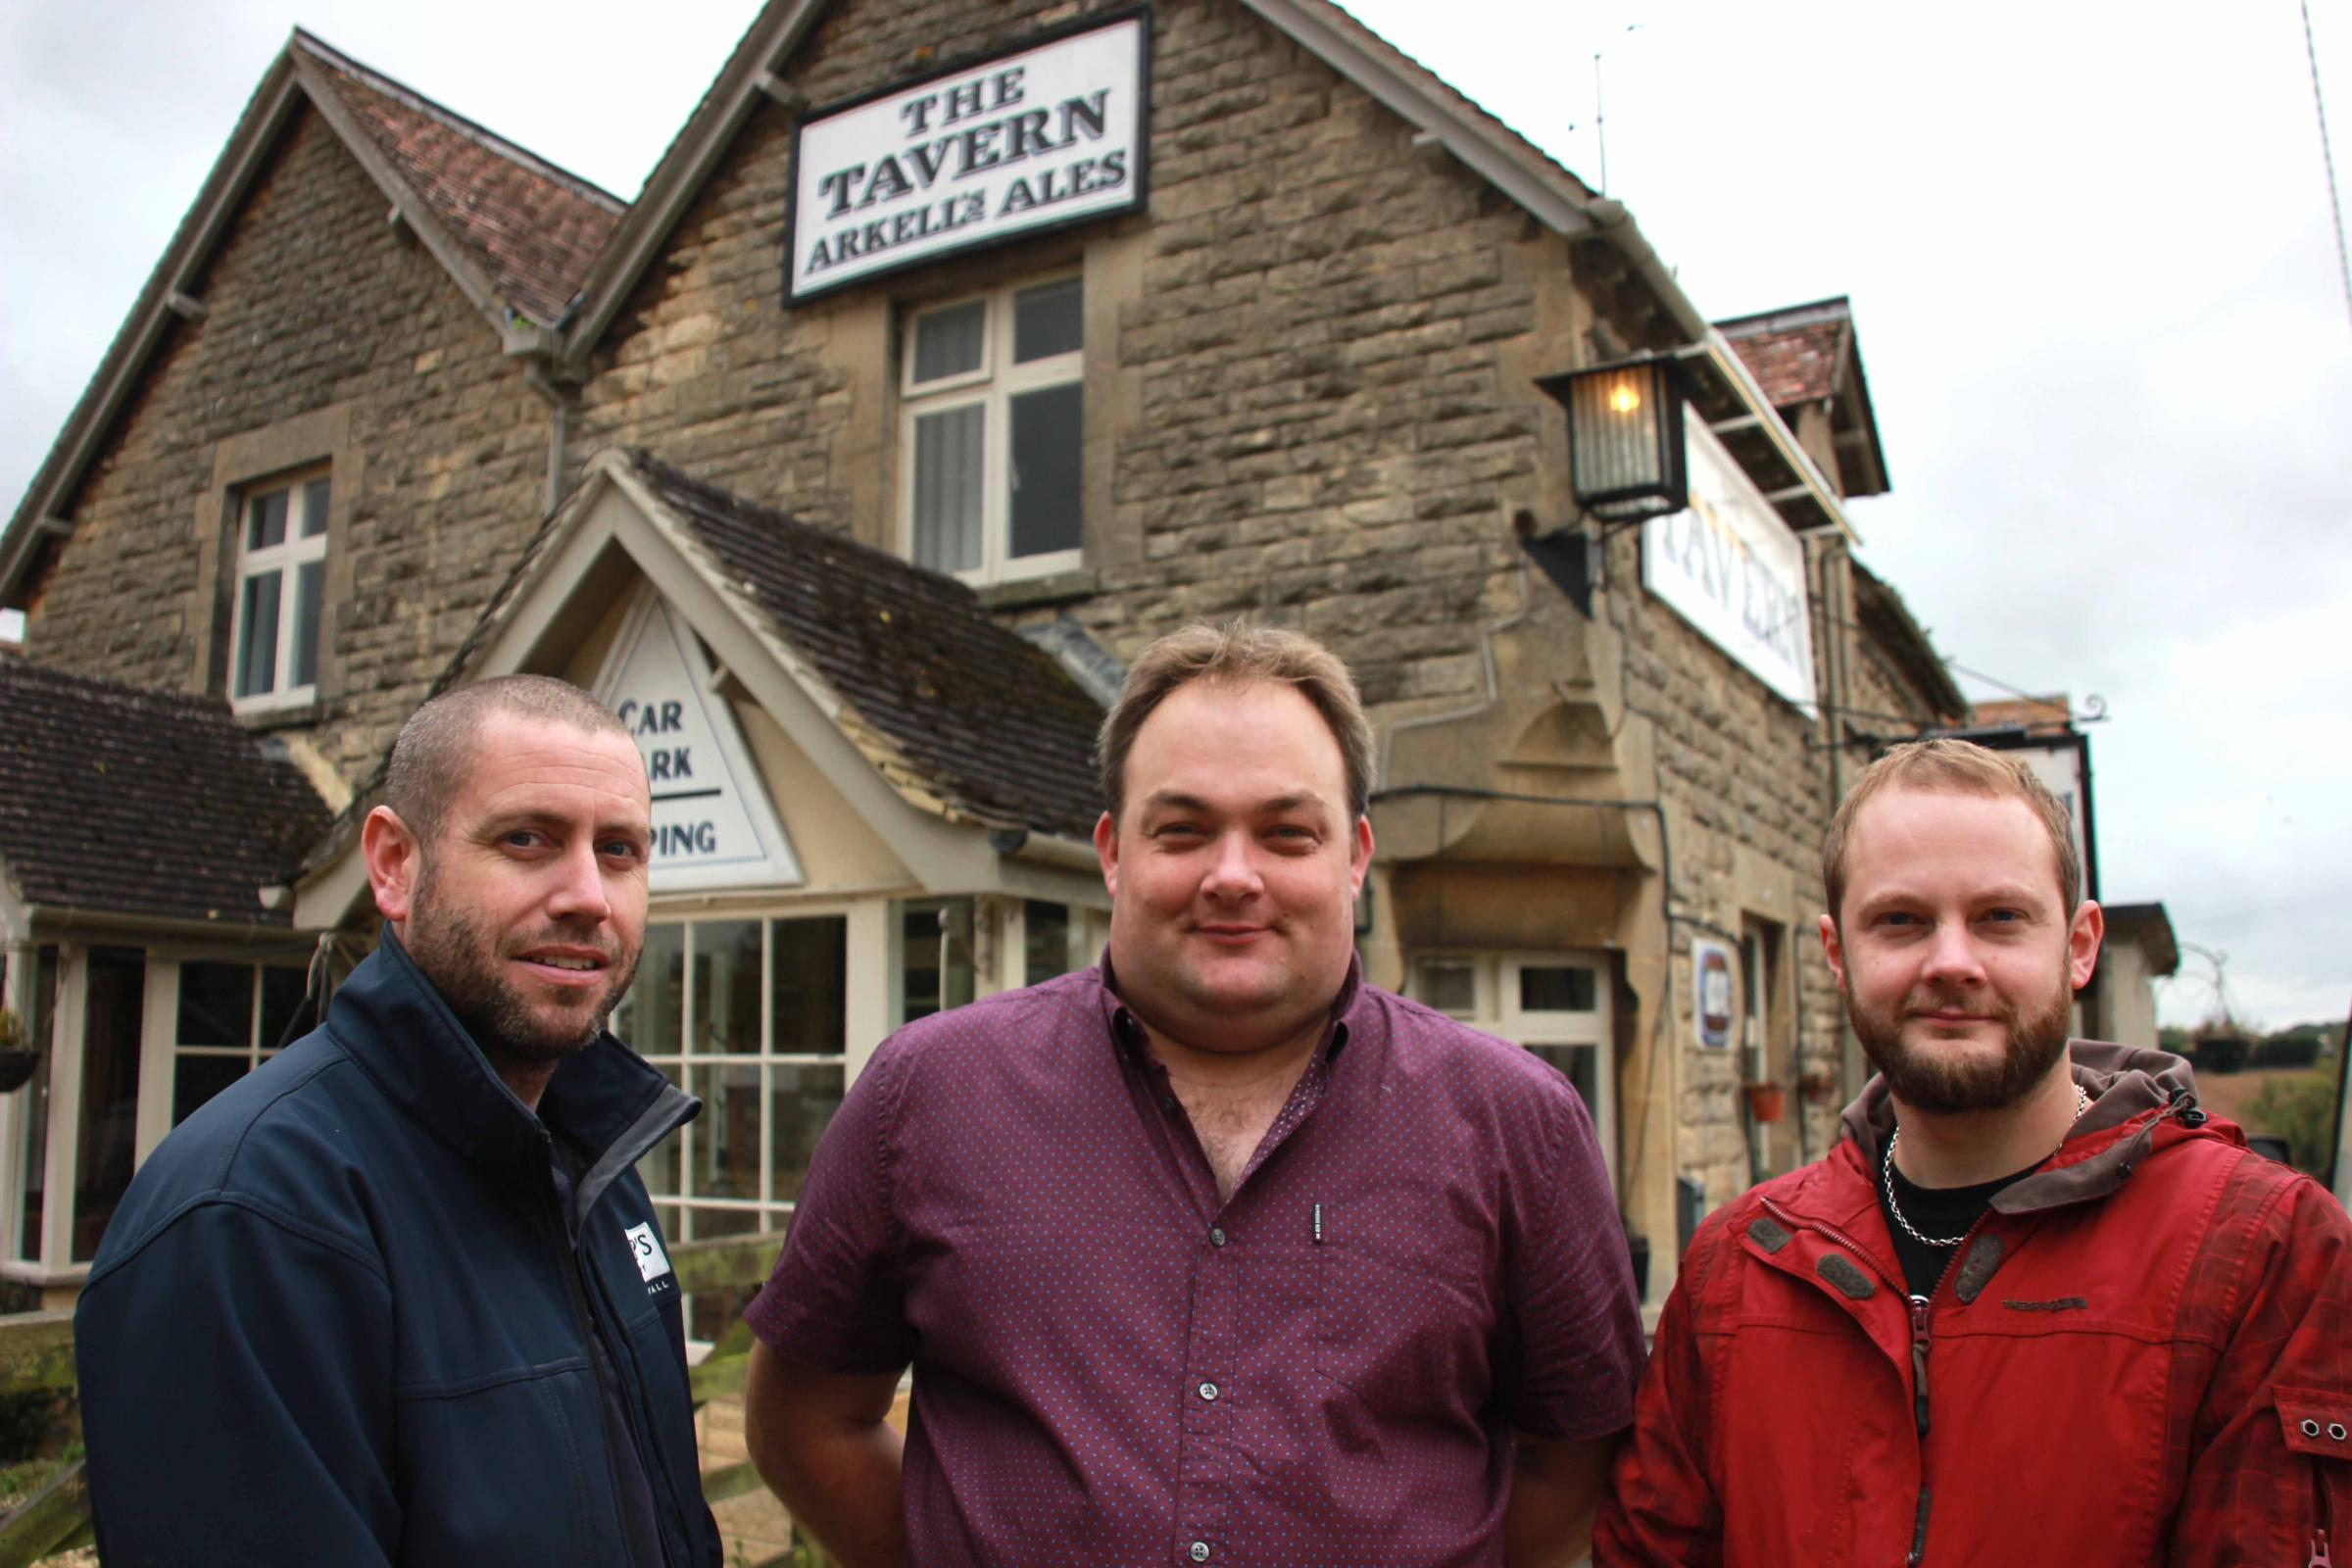 New landlords of The Tavern Inn, David Leith (left) and Daniel Keicher (right), with pub manager Stuart Baker (centre)